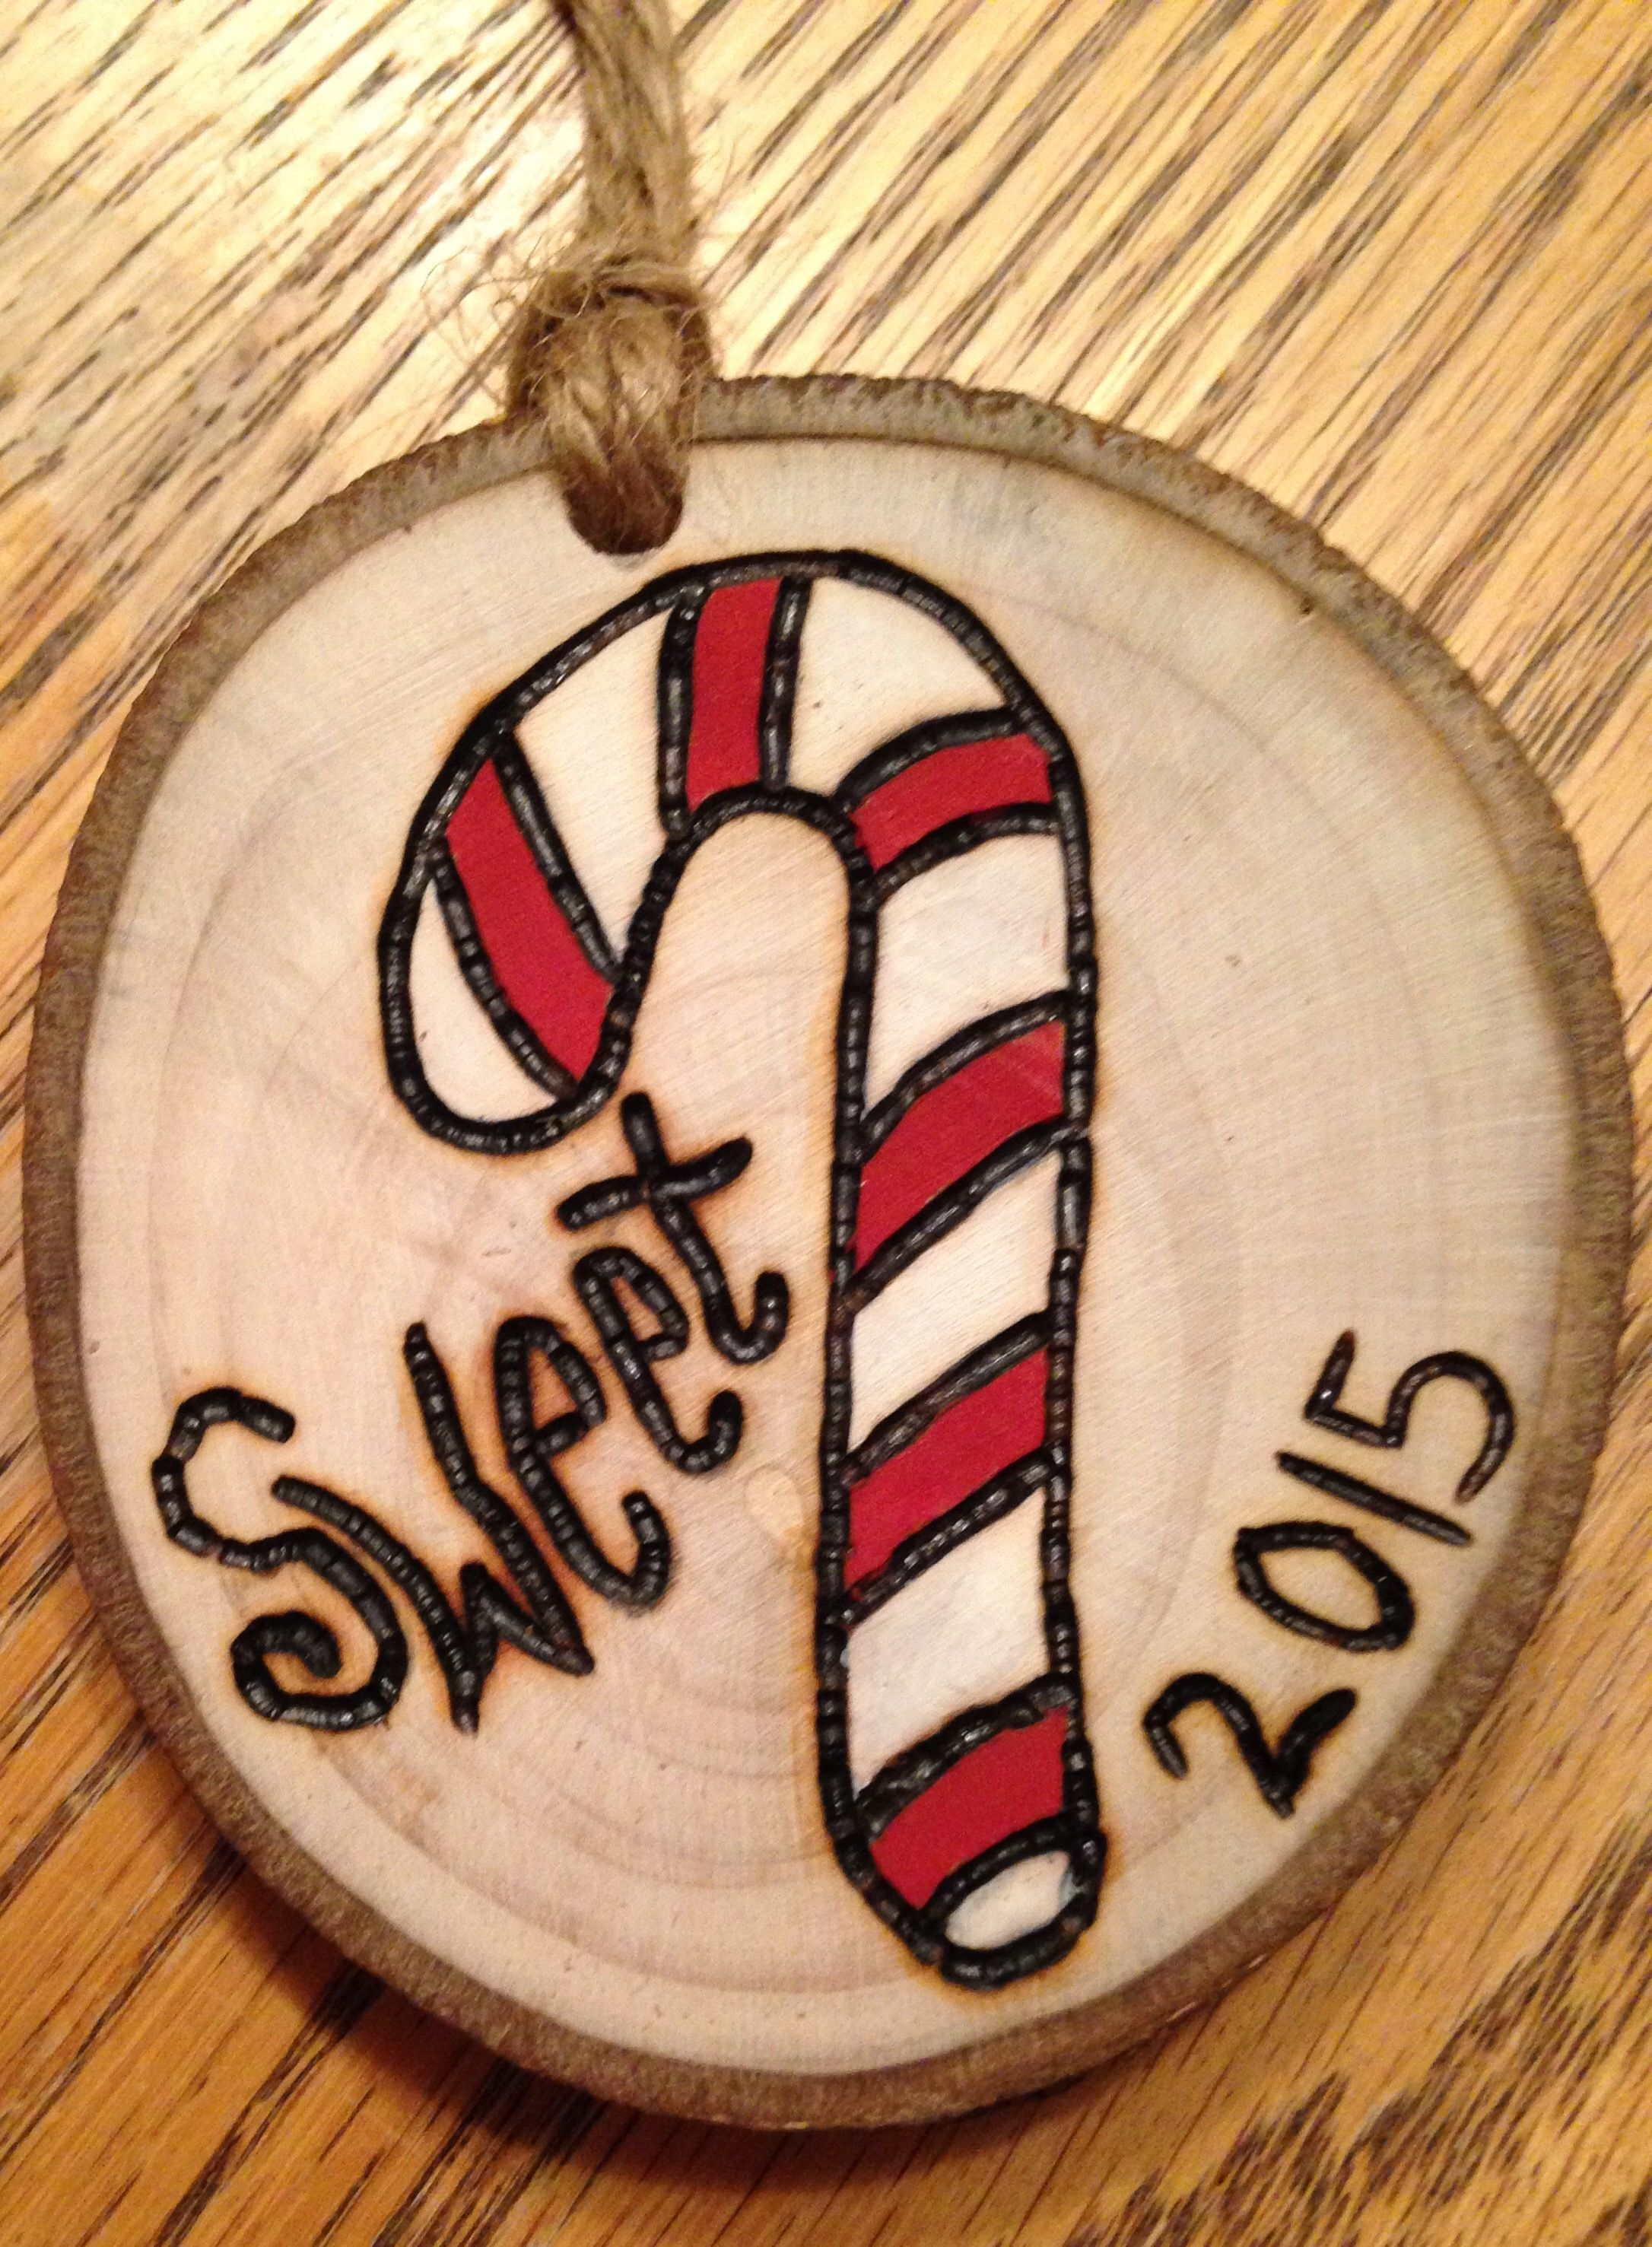 Rustic Candy Cane Wood Burned Christmas Ornament Natural Wood Christmas Ornament Crafts Christmas Ornaments Homemade Christmas Wood Crafts